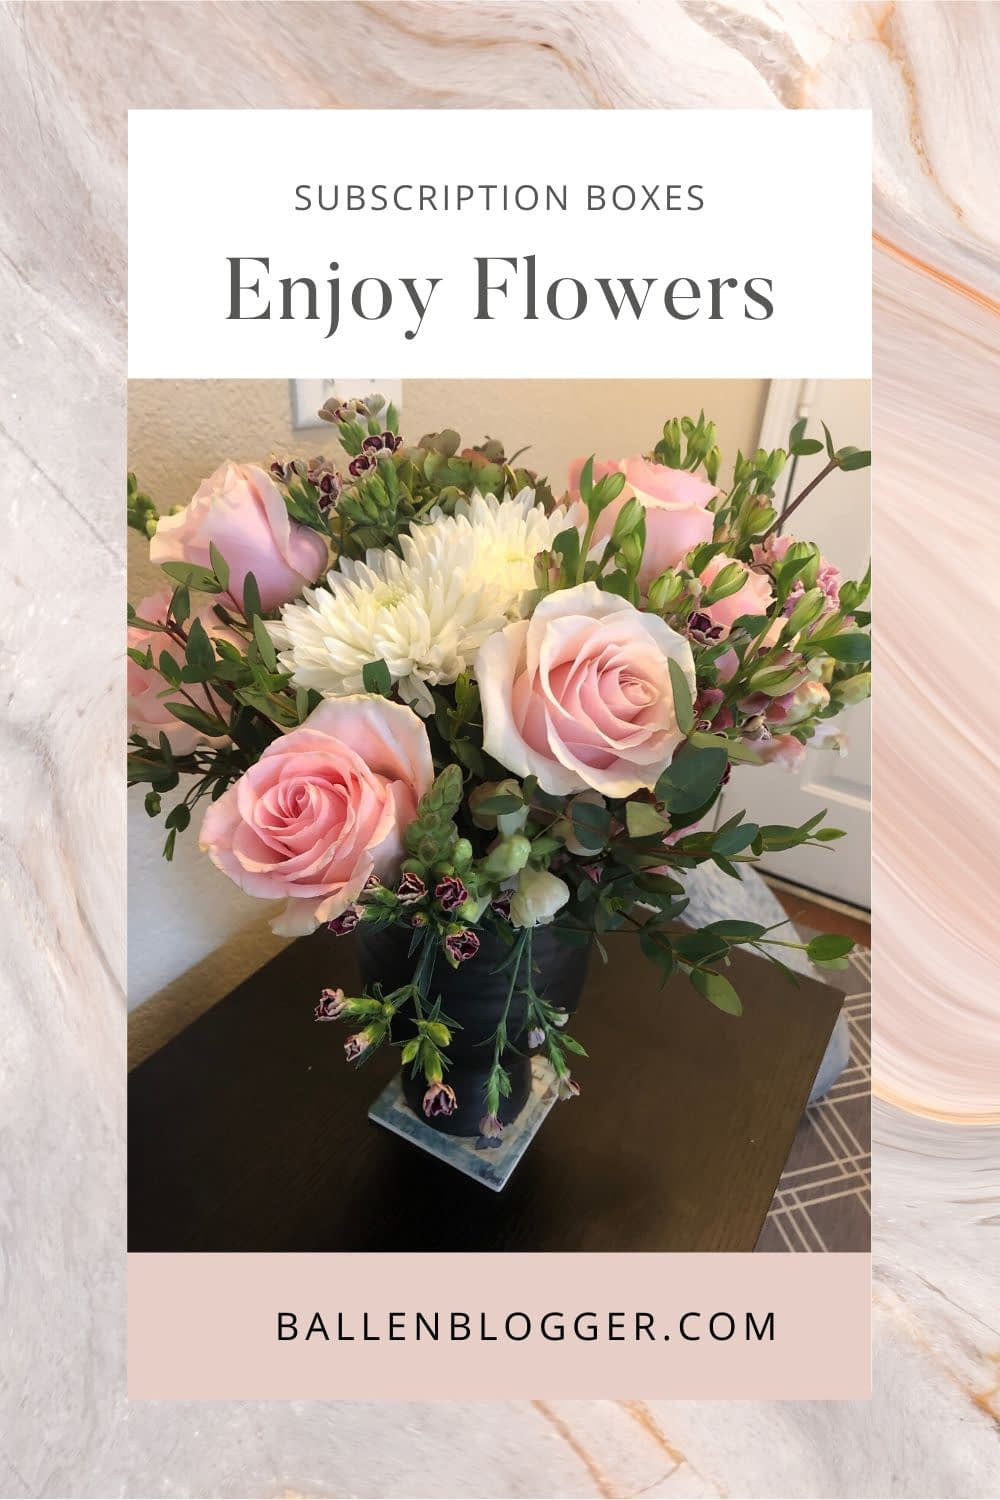 I already have enough vases, so I order the bouquets only. They are gorgeous, last a long time, and are the most affordable based on comparative flower subscription services.